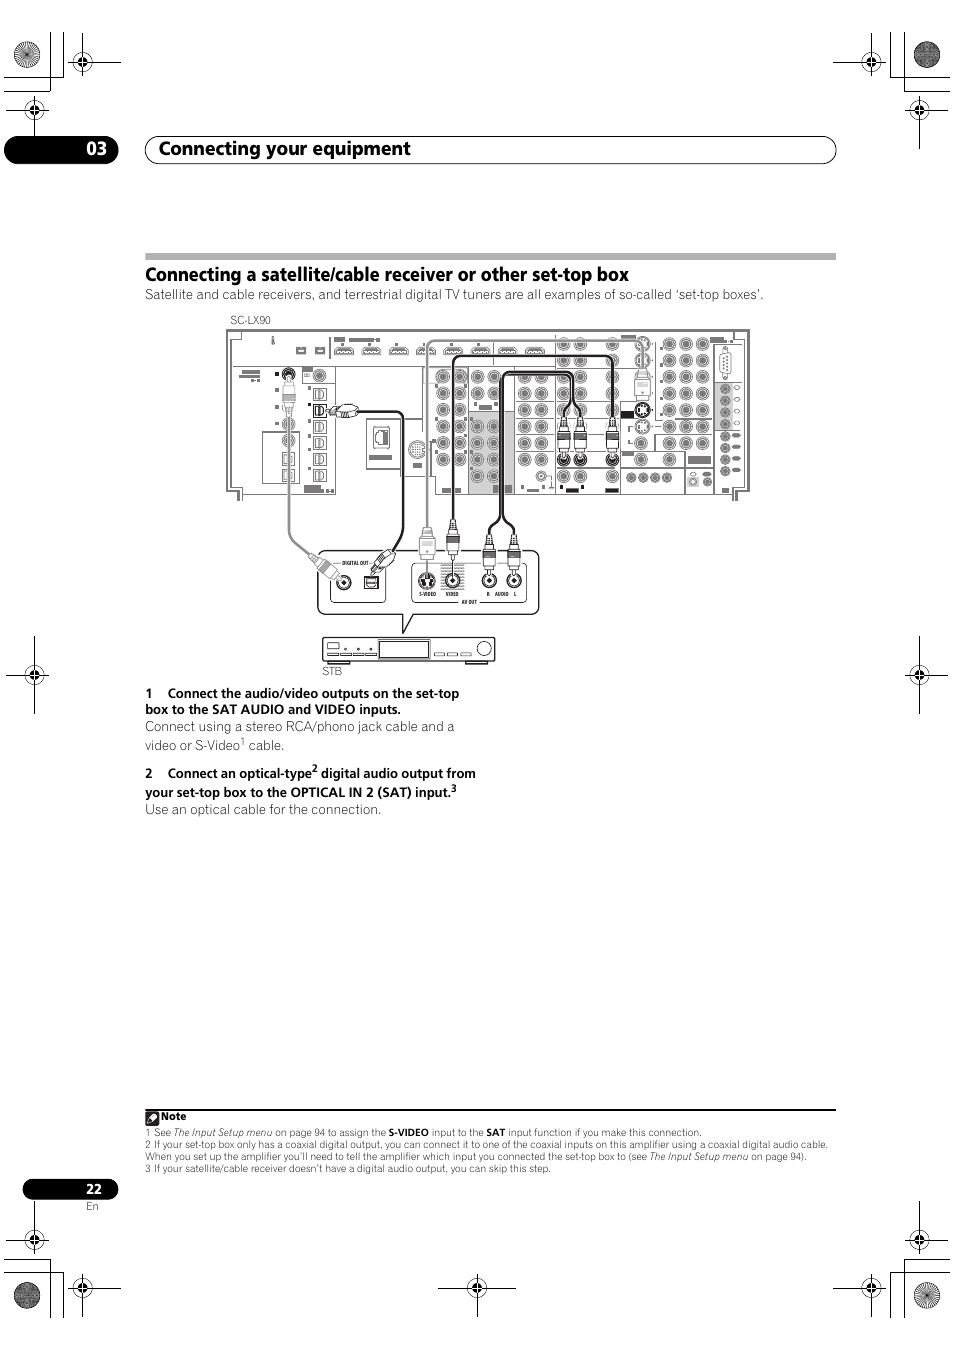 medium resolution of connecting your equipment 03 cable 2 connect an optical type use an optical cable for the connection pioneer sc lx90 user manual page 22 150